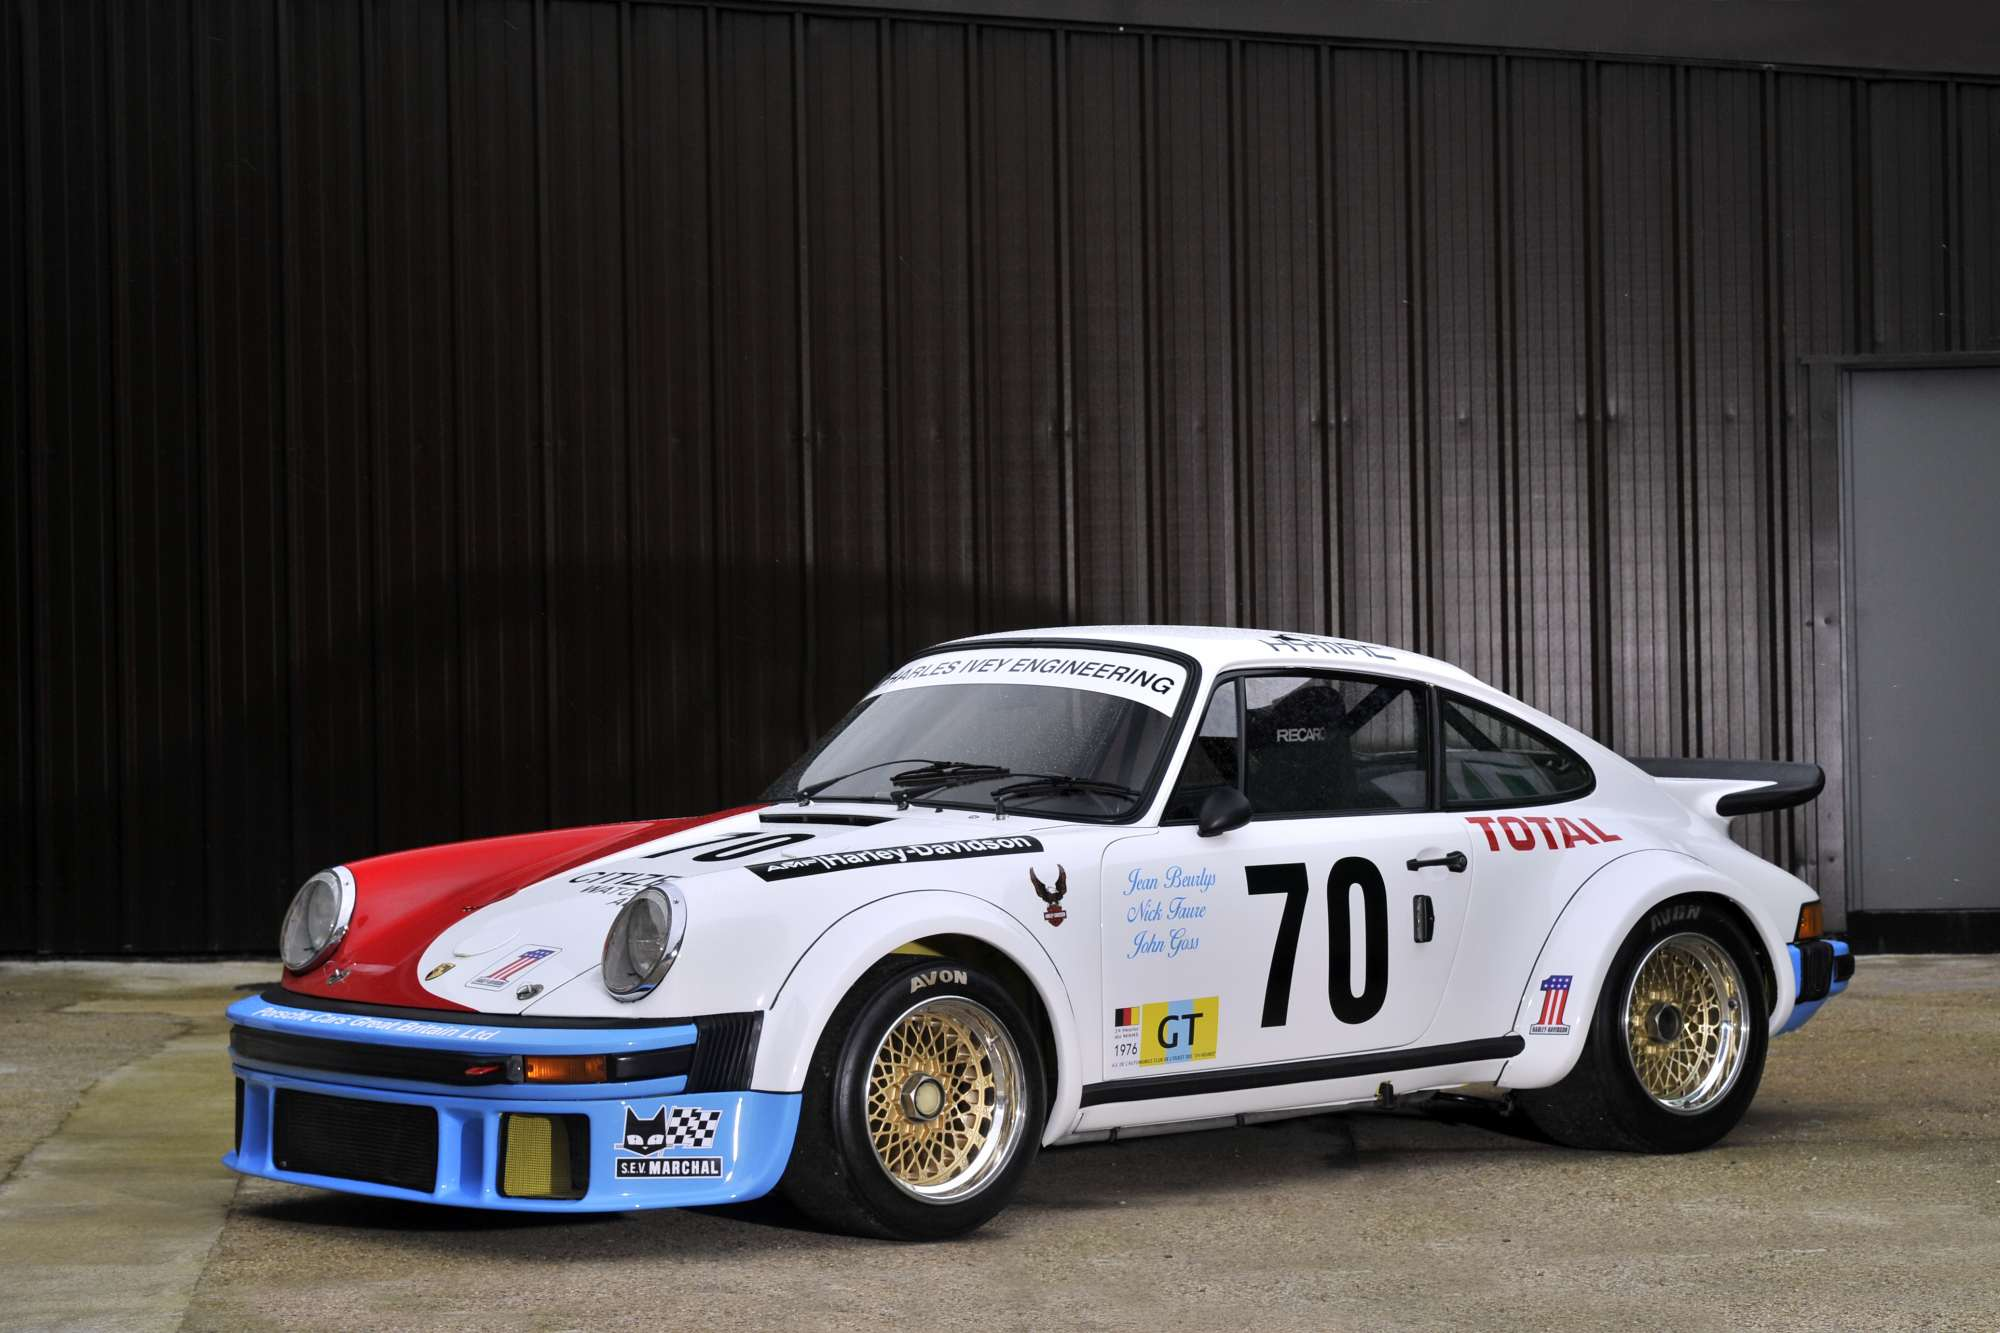 1976 Porsche 934 Rsr Turbo Previously Sold Fiskens